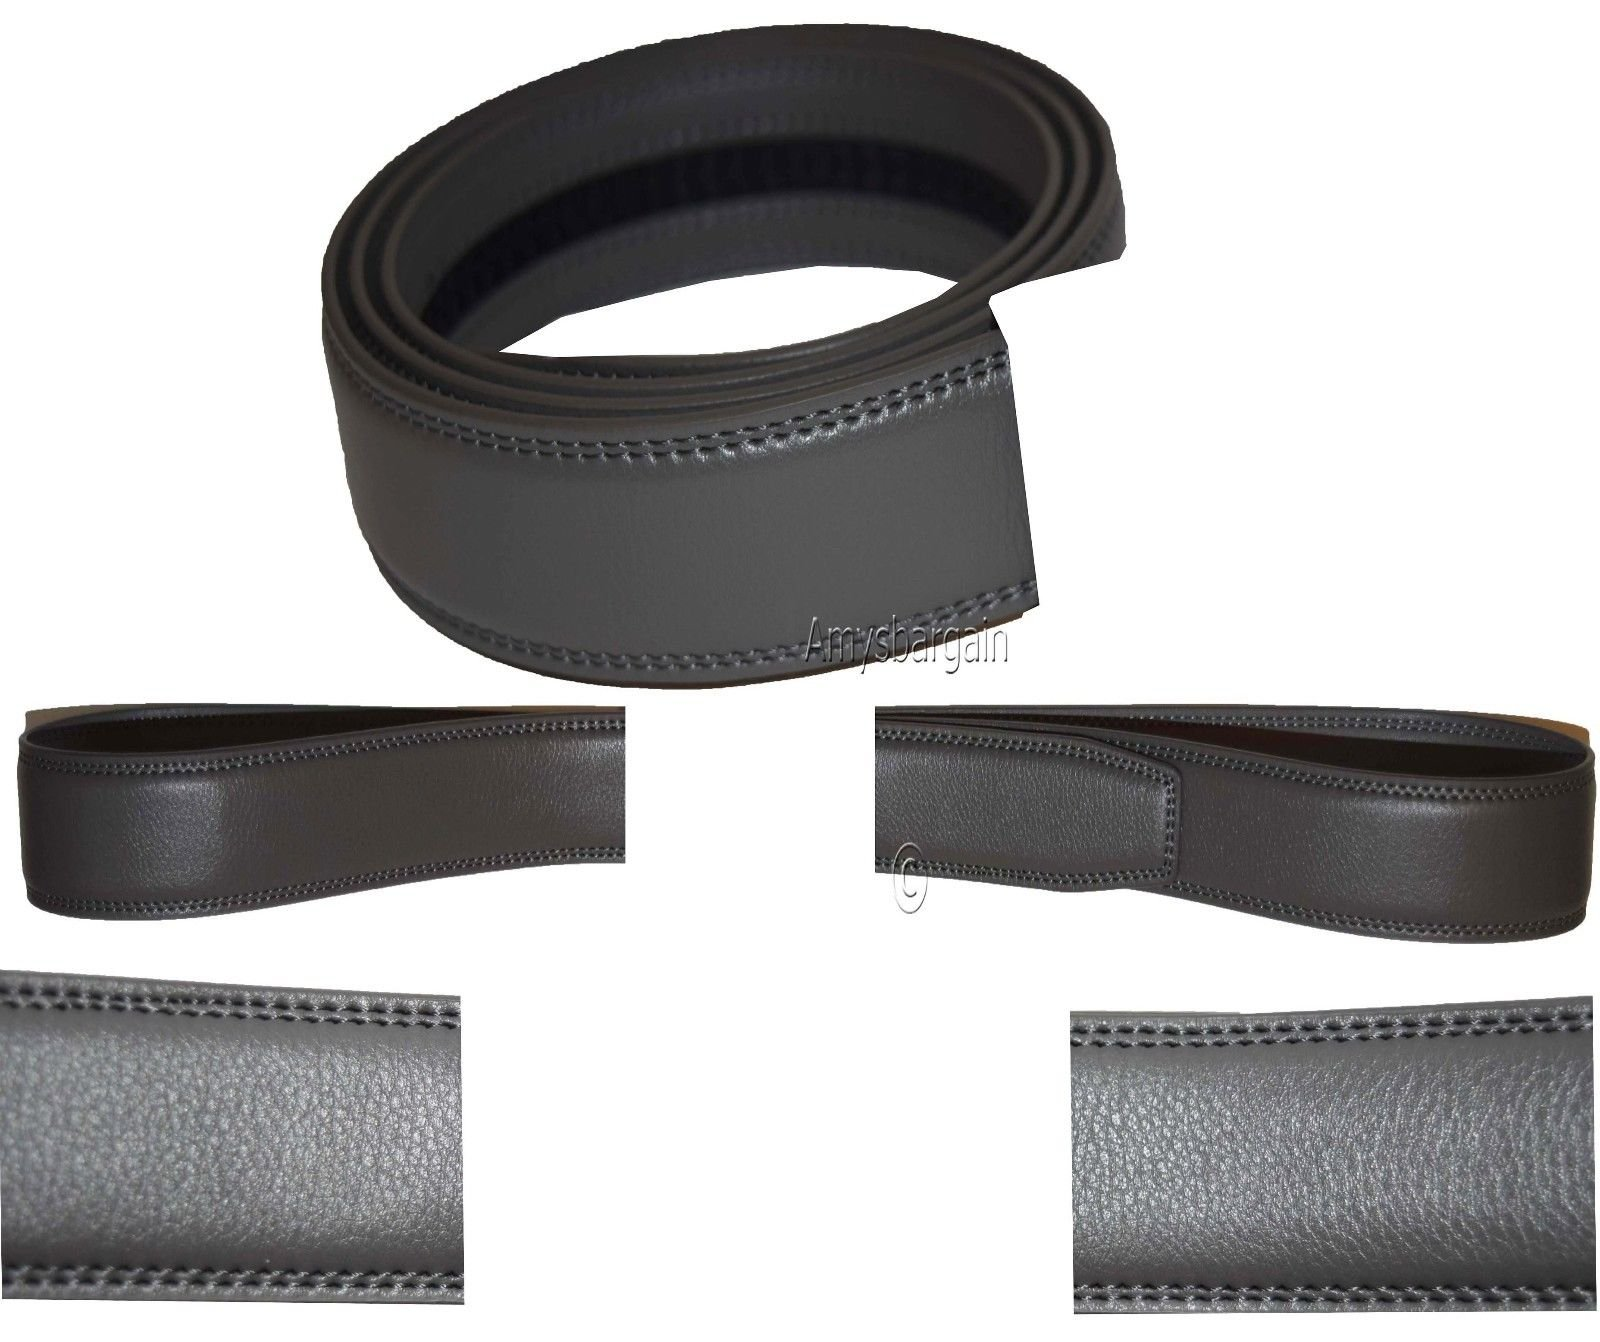 Women/Men's Leather belt strap only Replacement strap for Auto-lock buckle 1.10'' (Gray, 29-30)